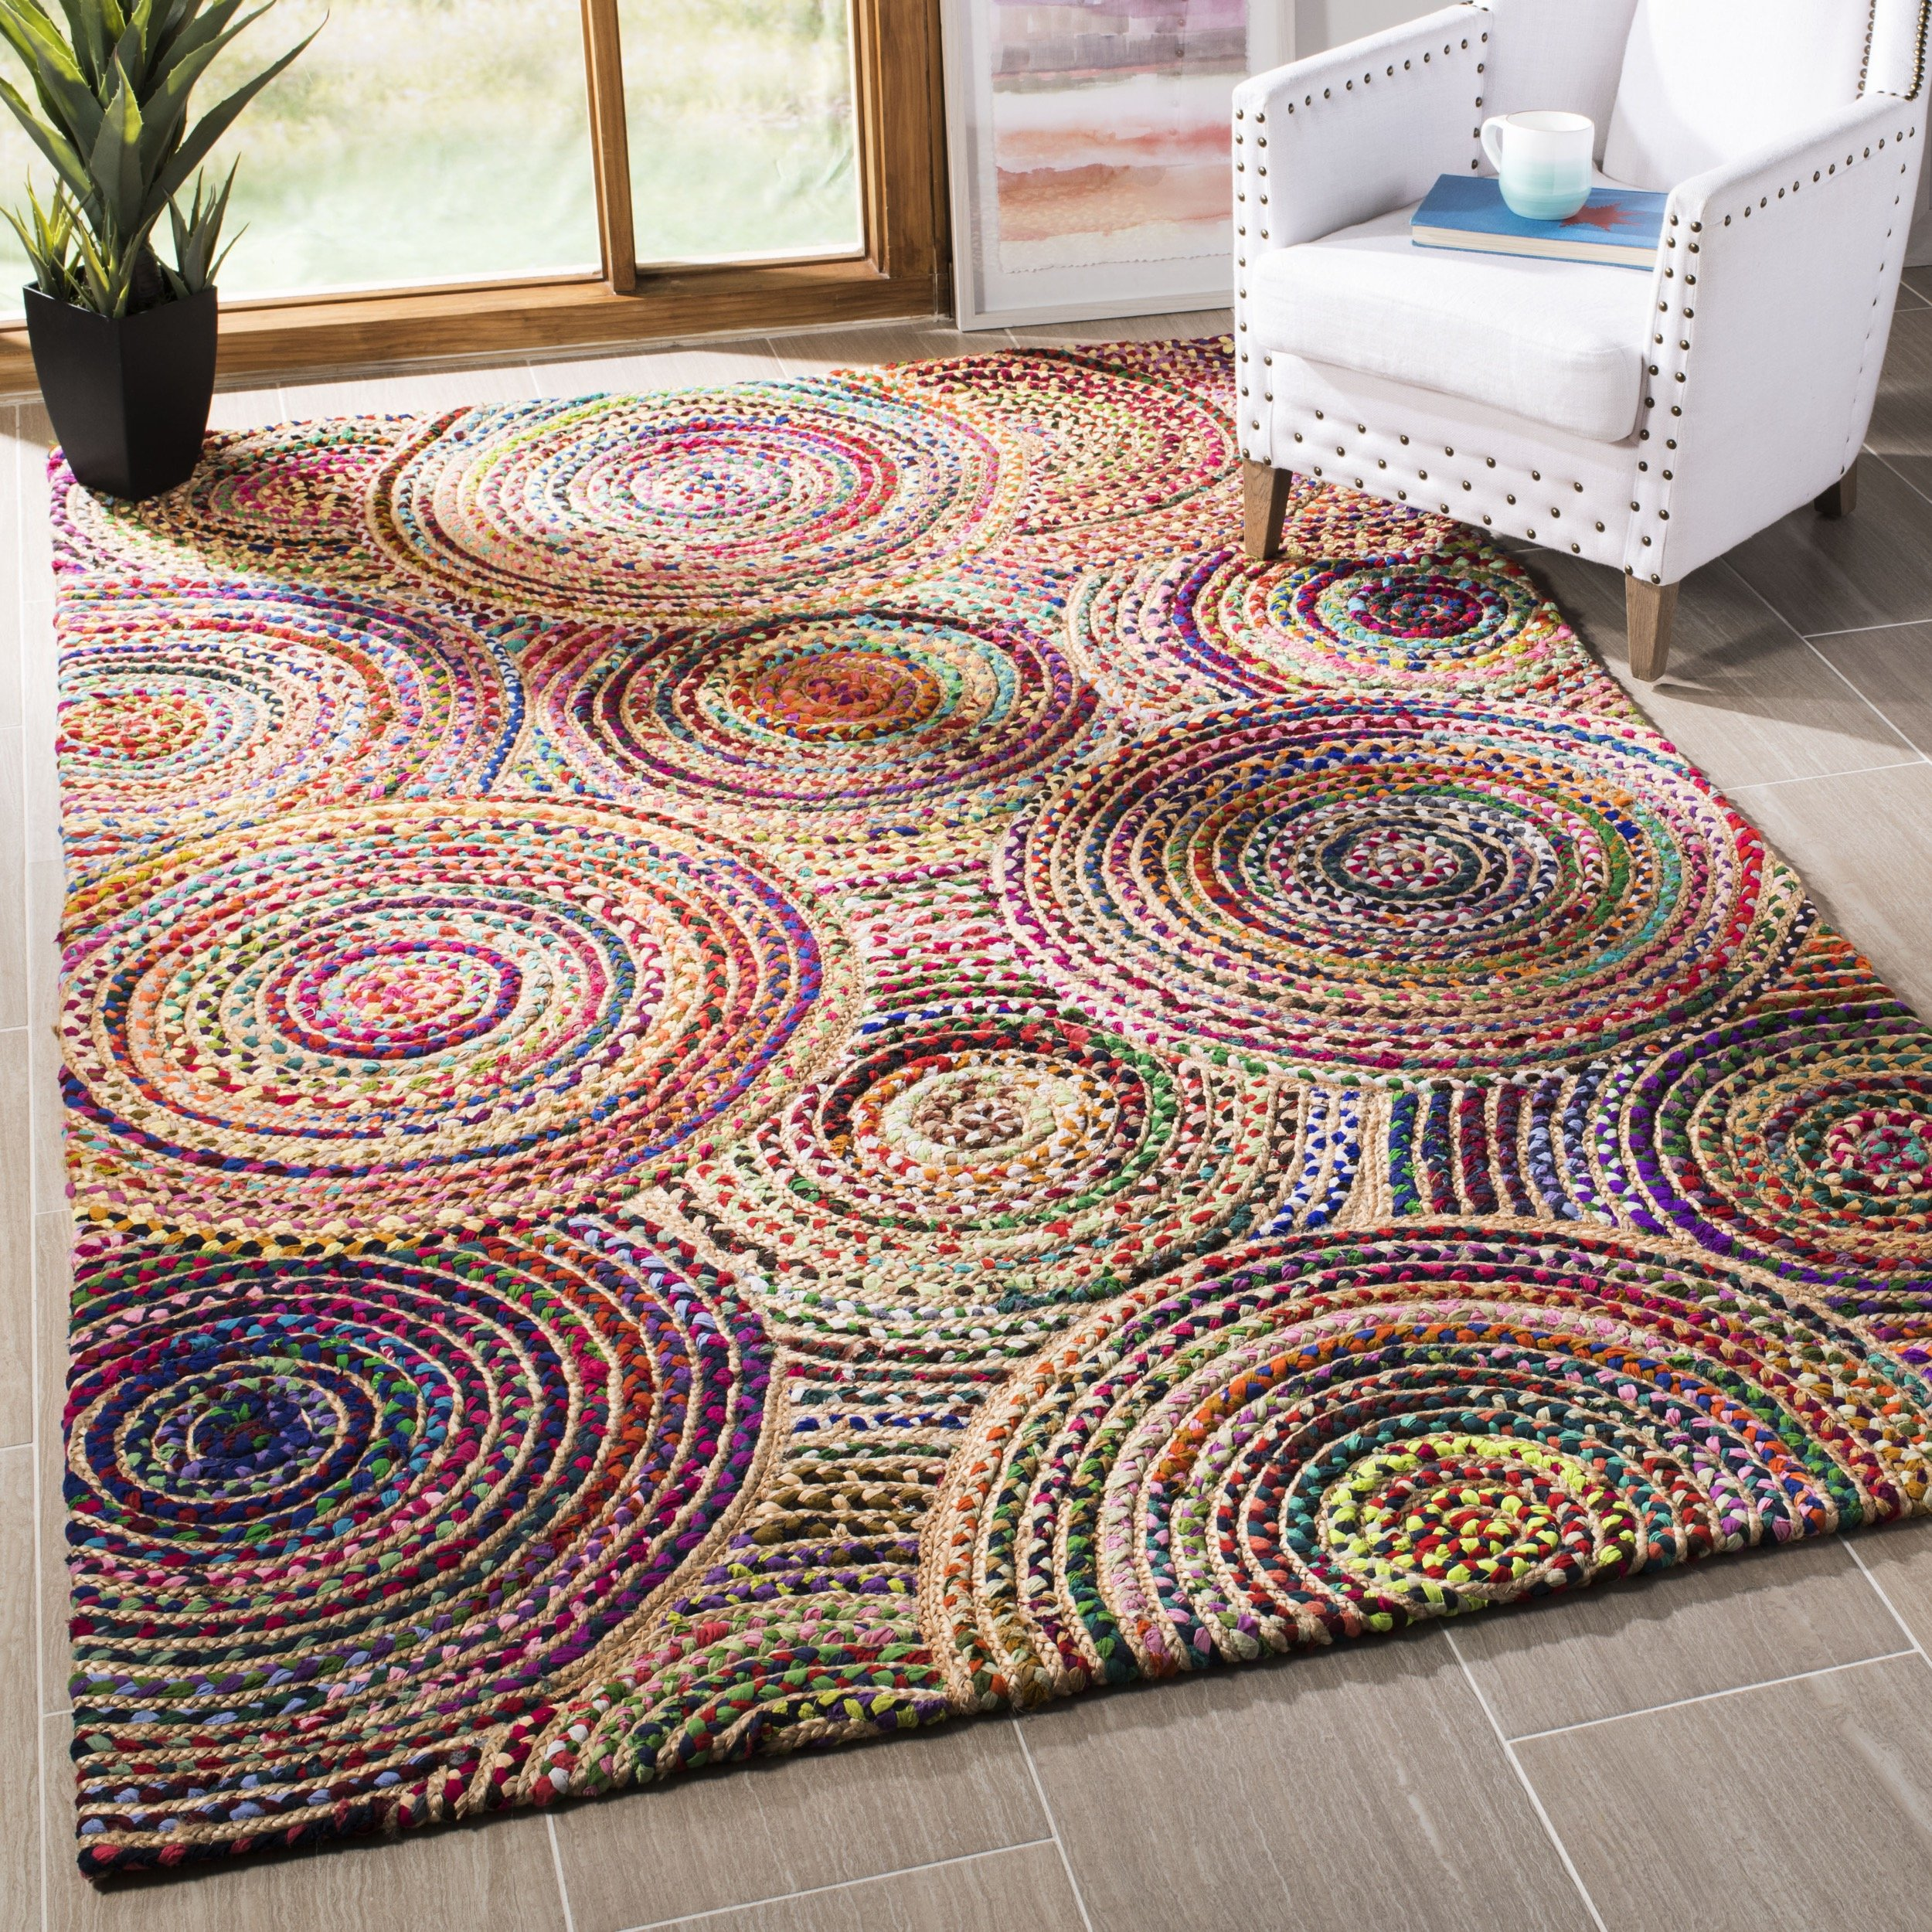 Safavieh CAP604A-3 Cape Cod Collection Flat Weave Handmade Area Rug, 3' x 5', Natural/Multi